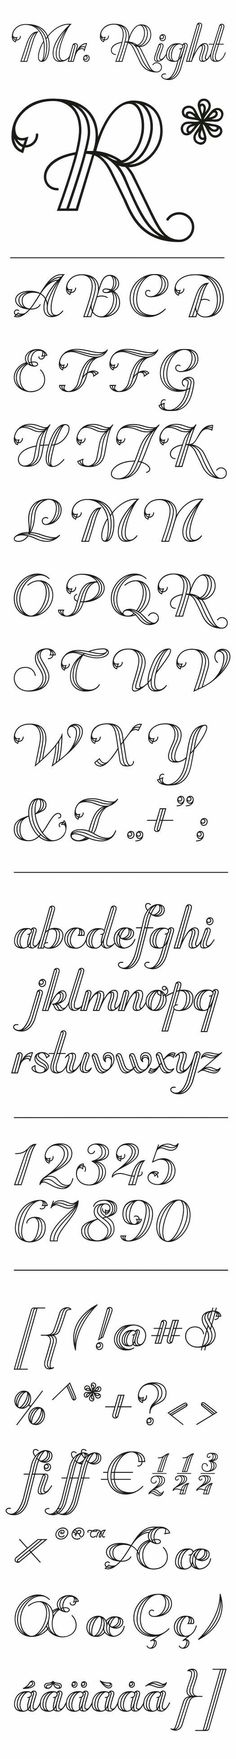 Simple alphabet letters that can be drawn by hand Journal, hand lettering, alphabet, font Easy hand drawn lettering great for journaling scrapbooking wedding invitations Hand Lettering Fonts, Doodle Lettering, Creative Lettering, Lettering Styles, Typography Fonts, Lettering Tutorial, Cursive, Handwriting Fonts, Penmanship